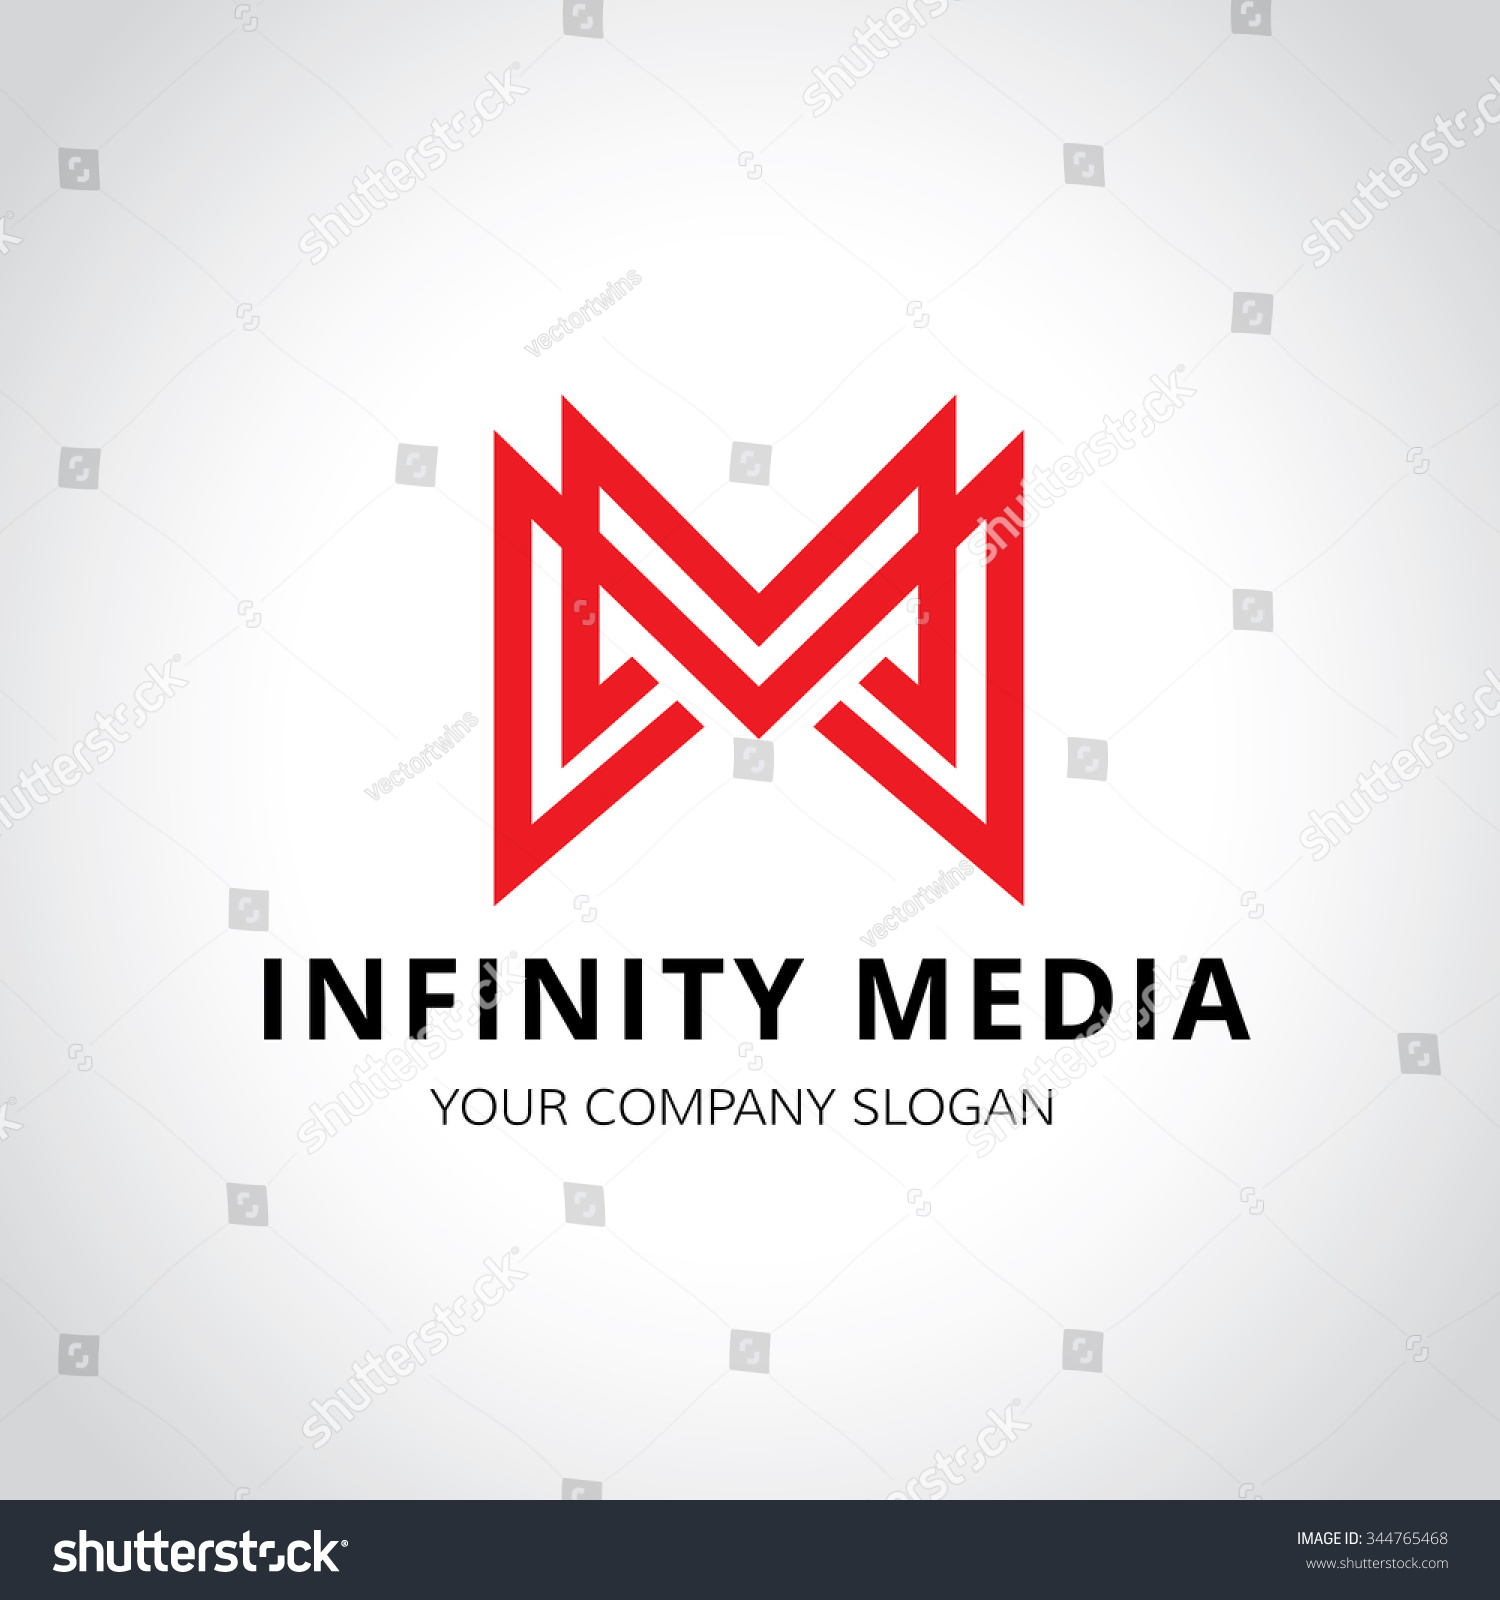 Infinity Media M Letter Vector Logo Stock Vector (Royalty Free ...